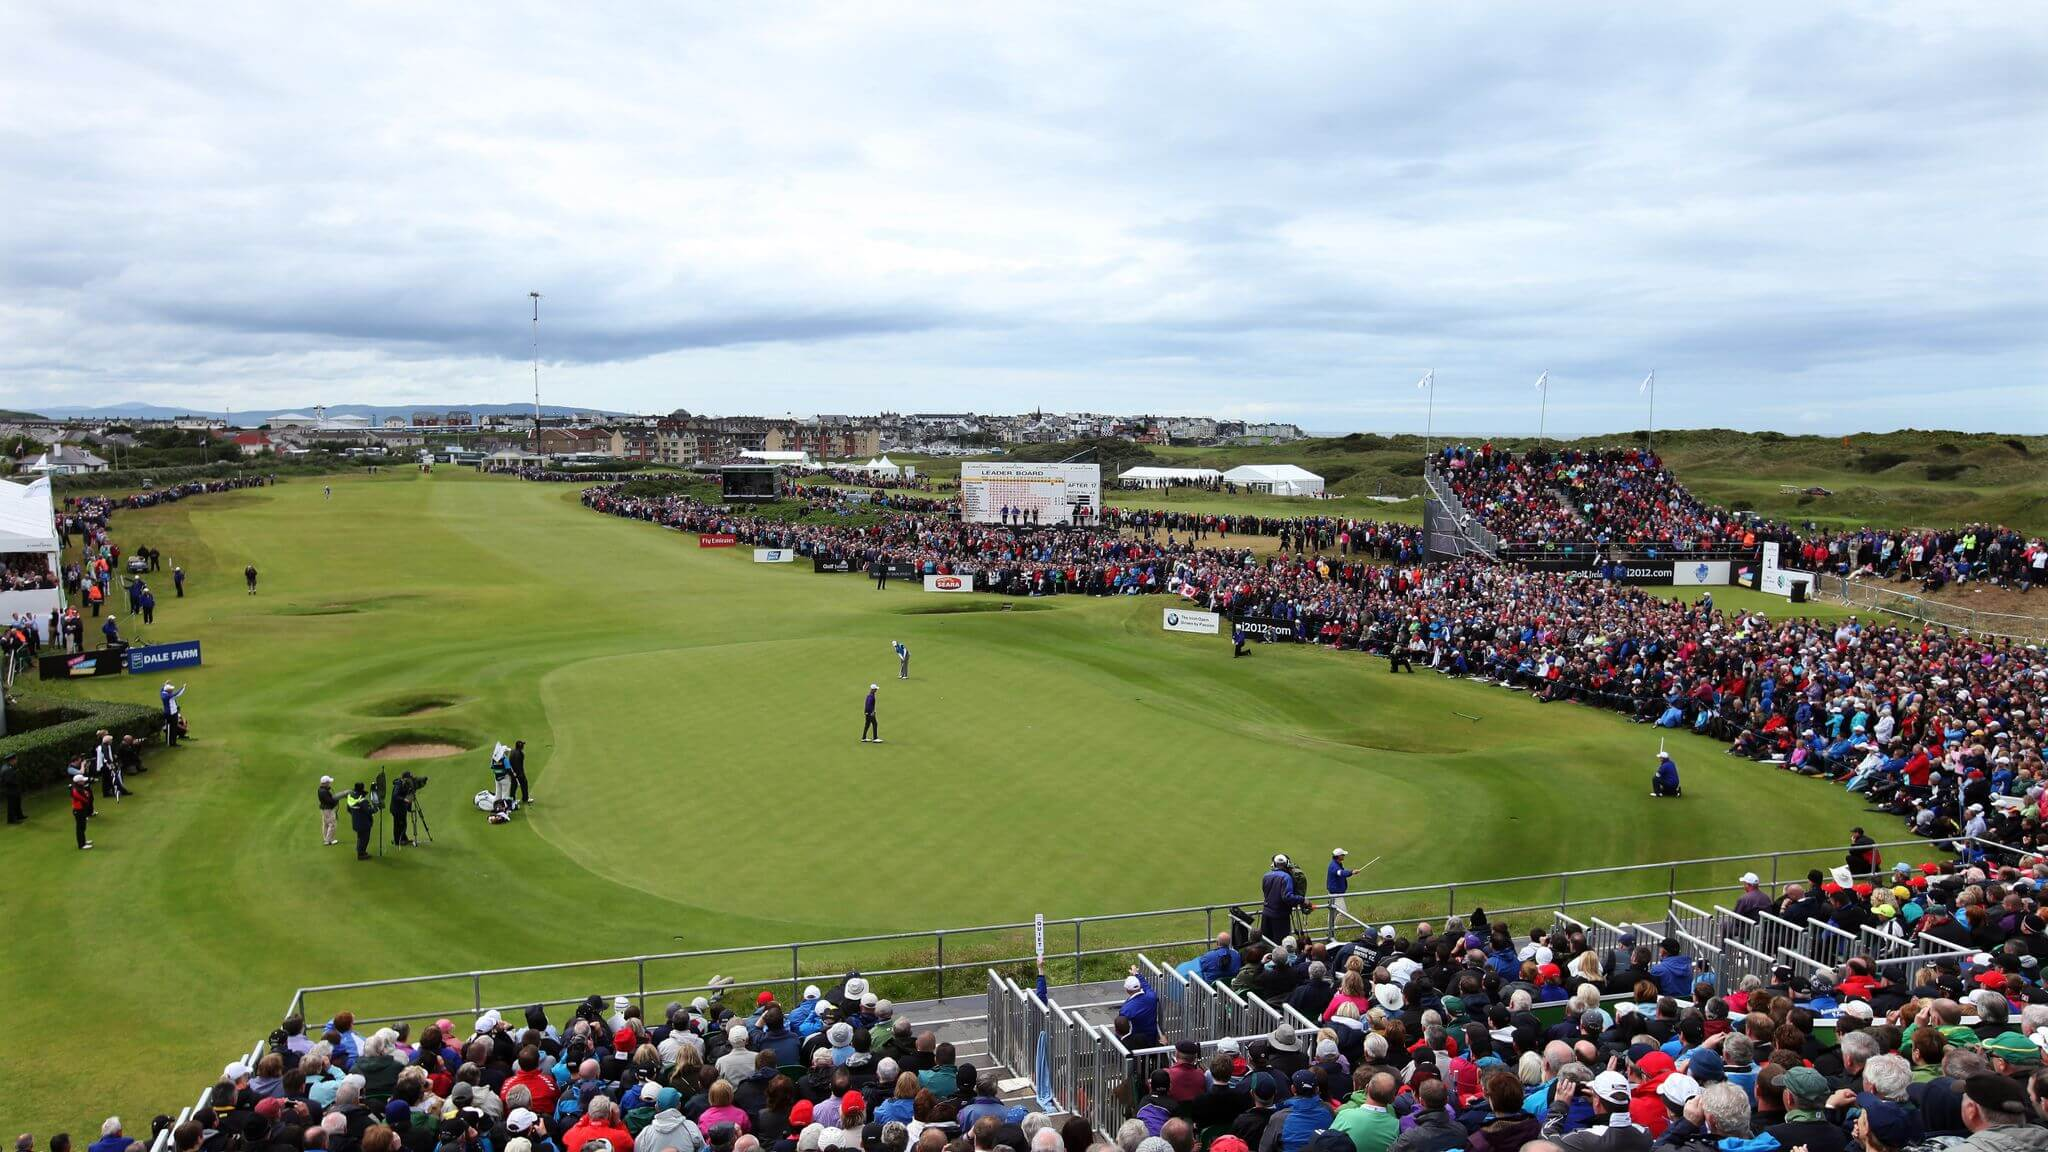 THE OPEN 2022 - THE 150TH OPEN